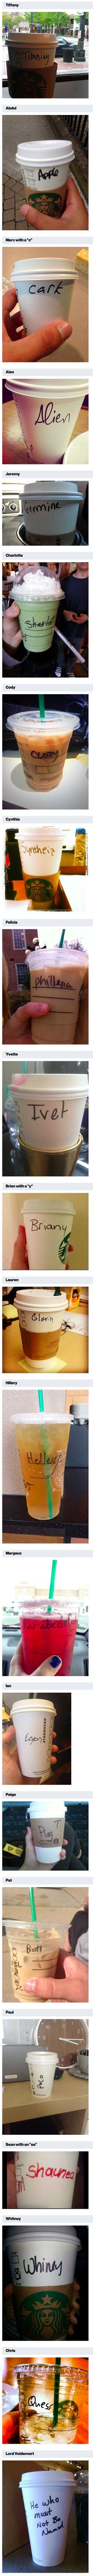 All of these names look easy enough, right? Well, these Starbucks empoyees had other things in mind when writing them down on cups.